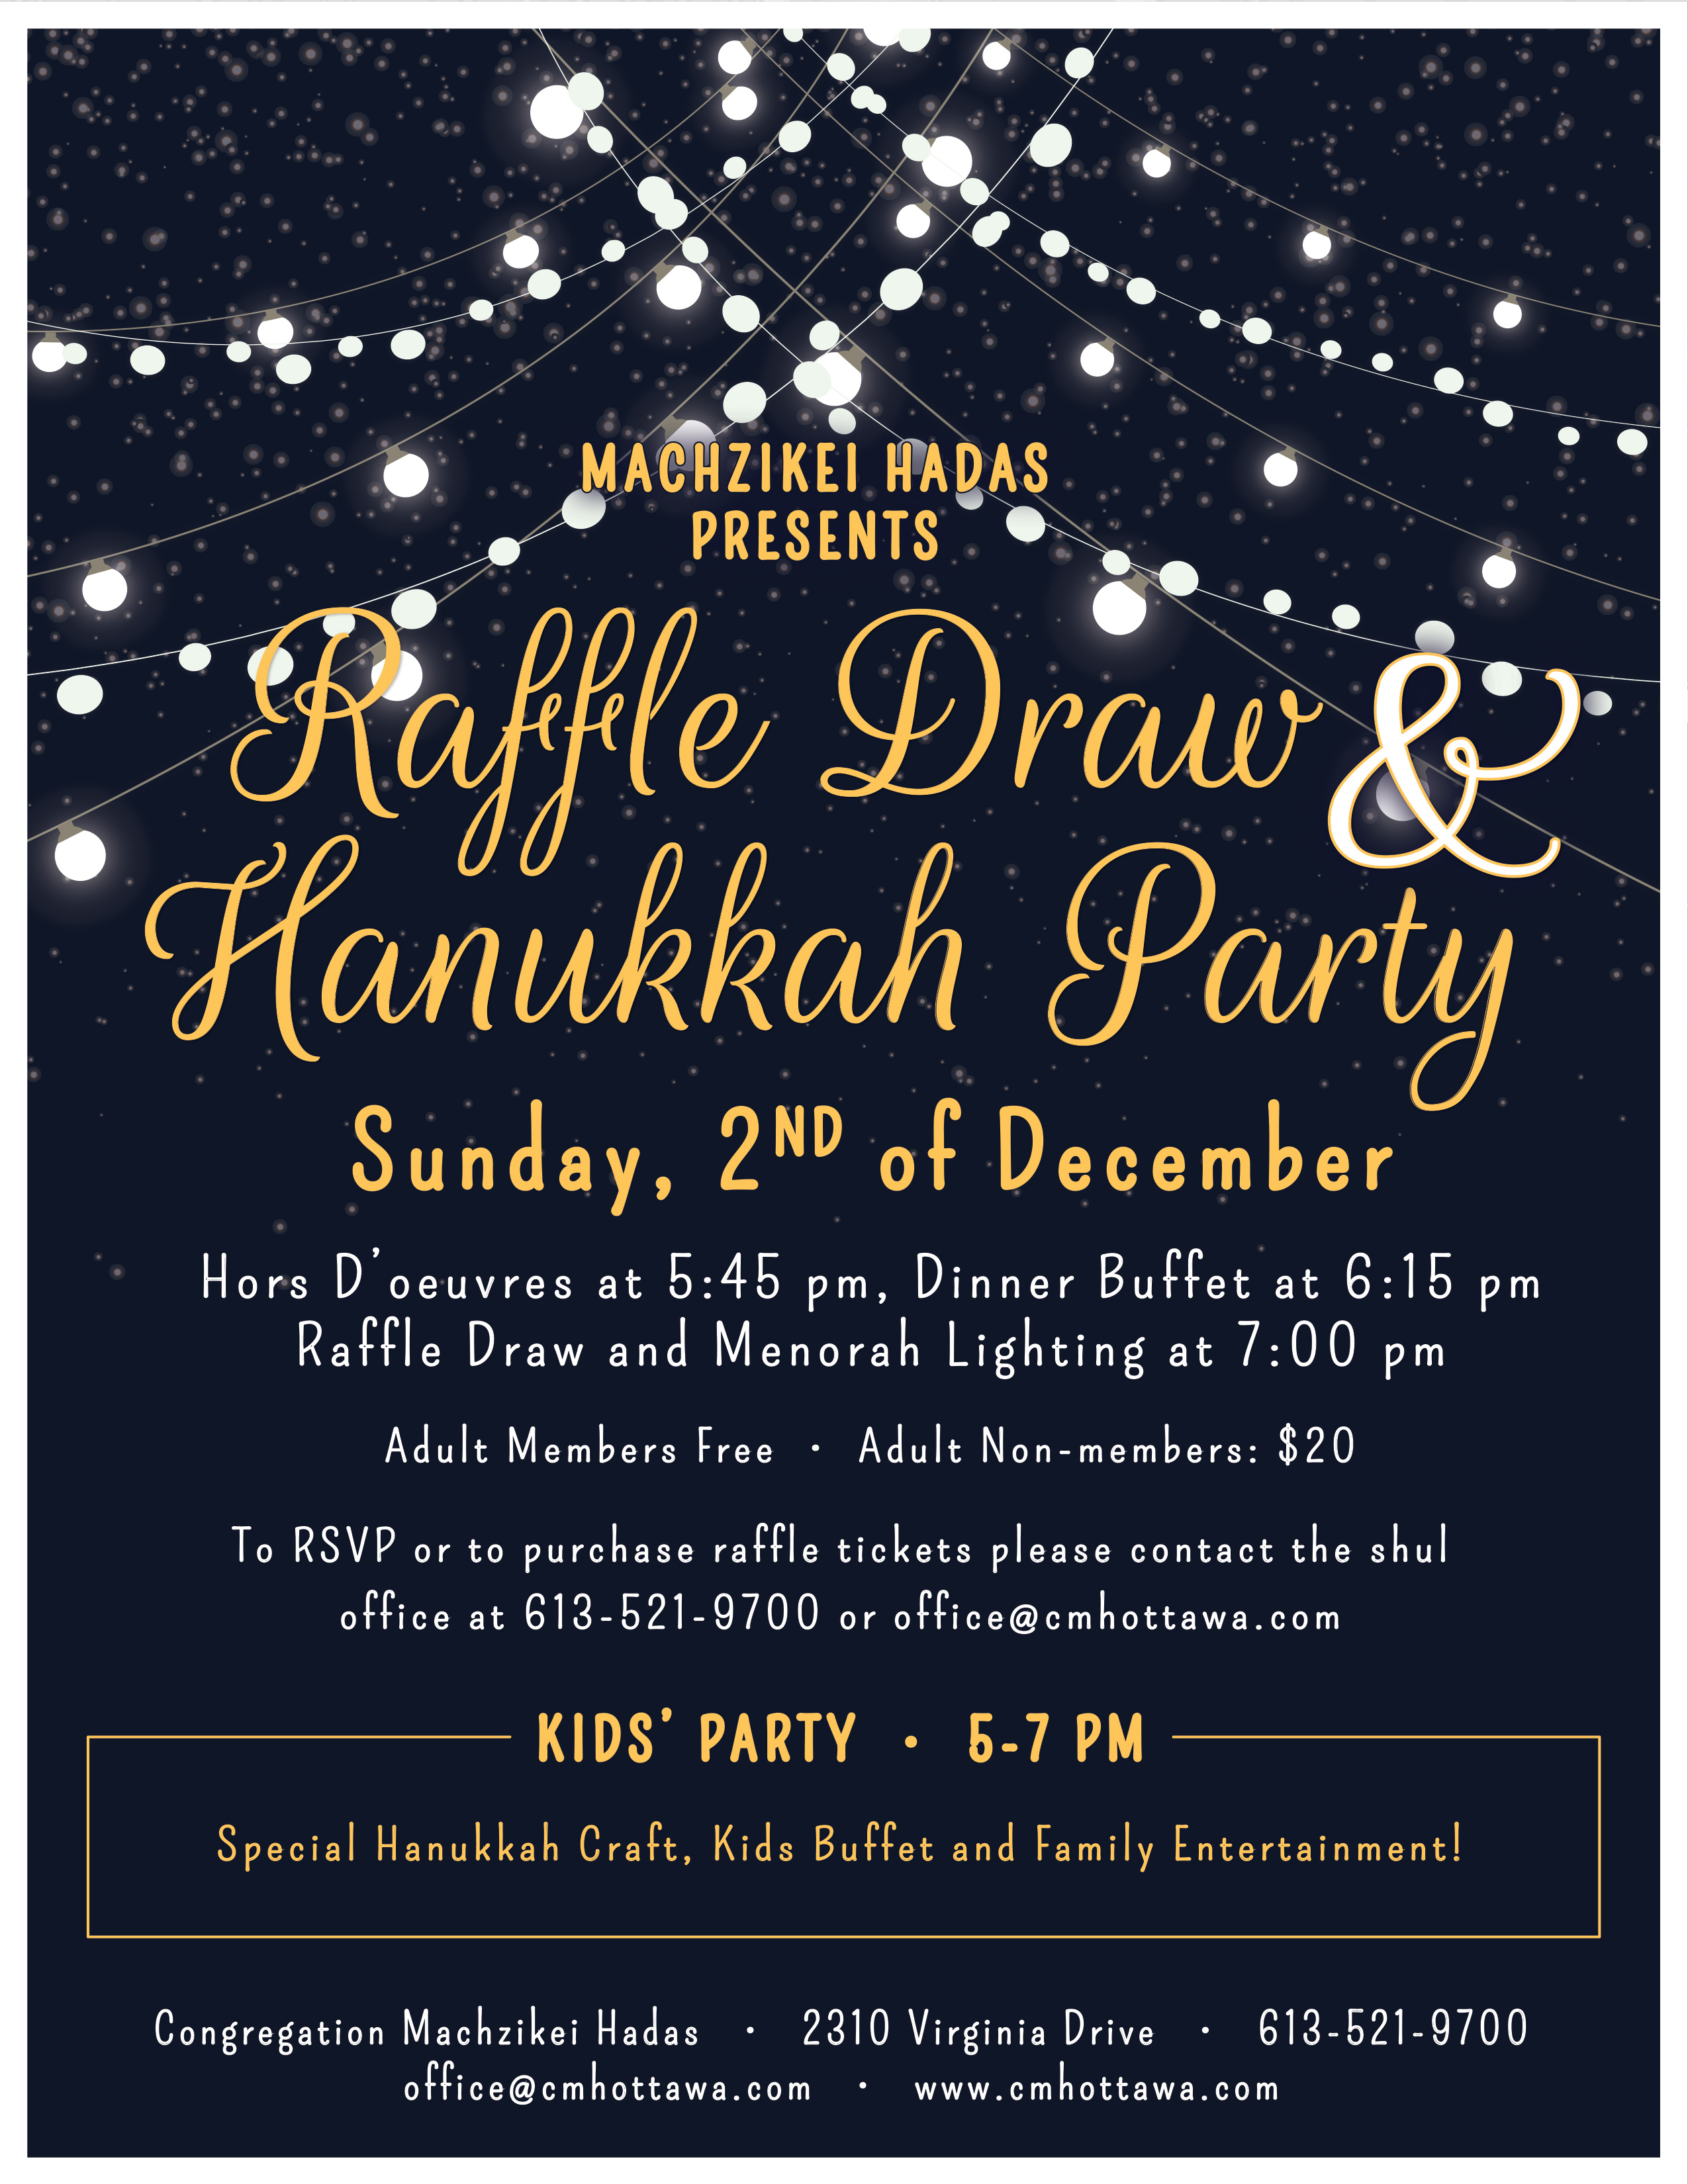 5a0dc298822 Raffle   Hanukkah Party - Event - Congregation Machzikei Hadas